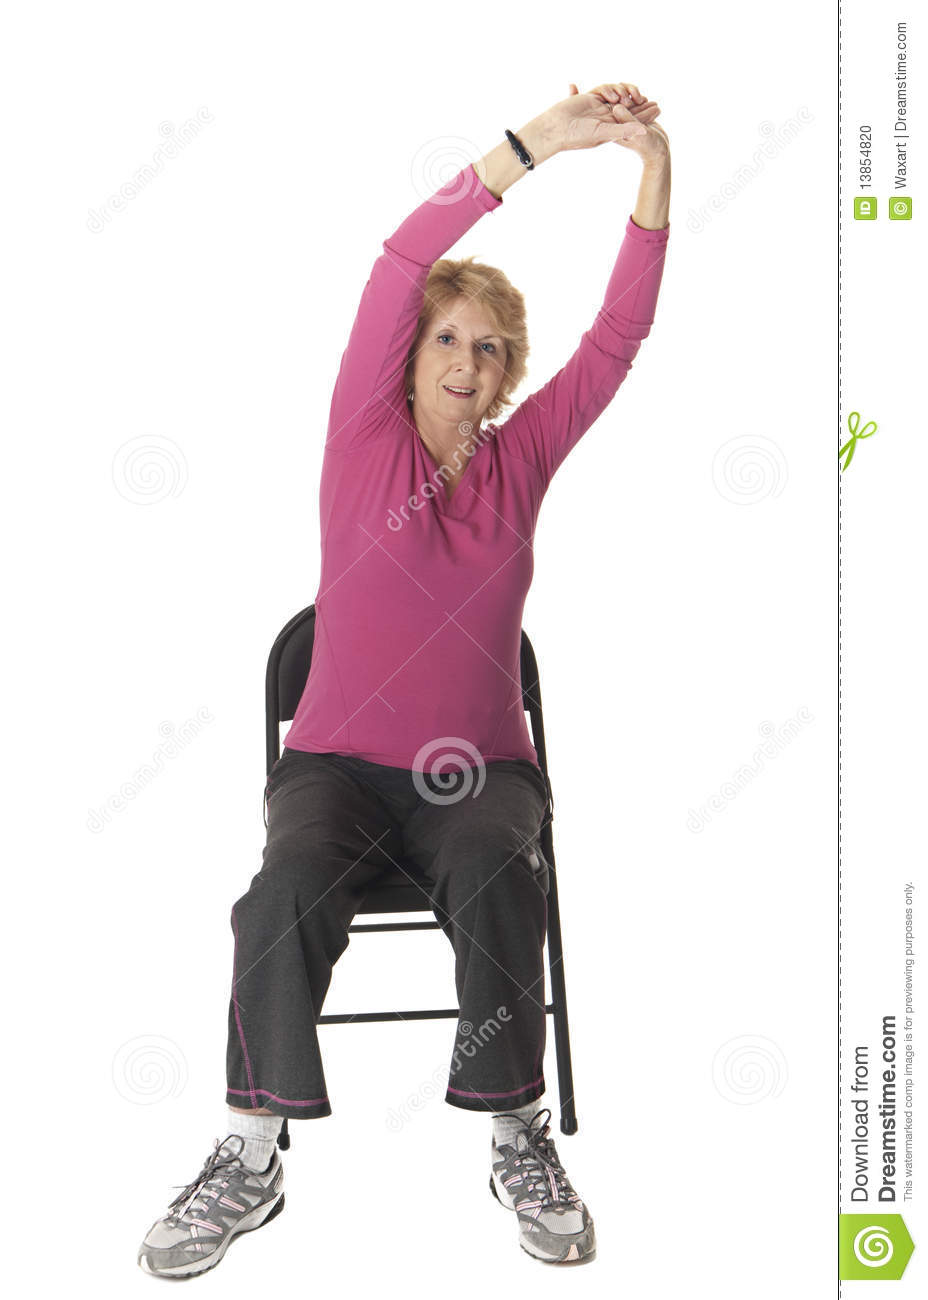 Elderly Woman Stretching As Part Of A Seated Workout Routine To Keep